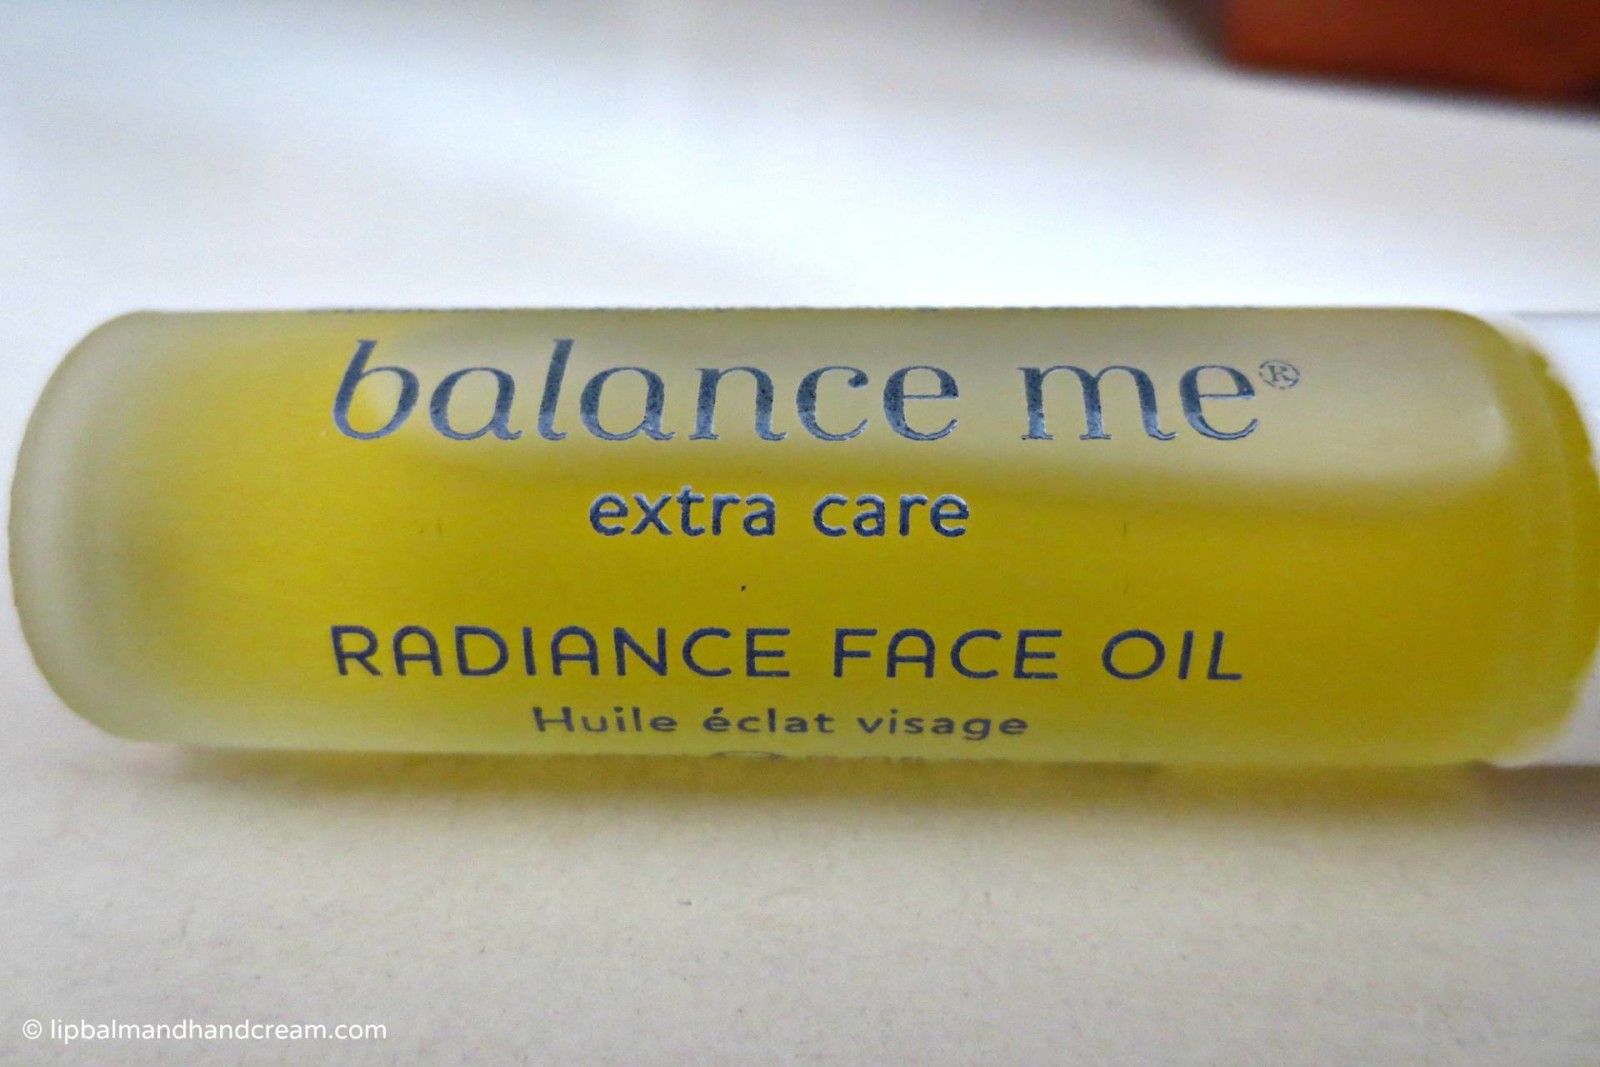 Another face oil?! Yes! Balance me radiance face oil review